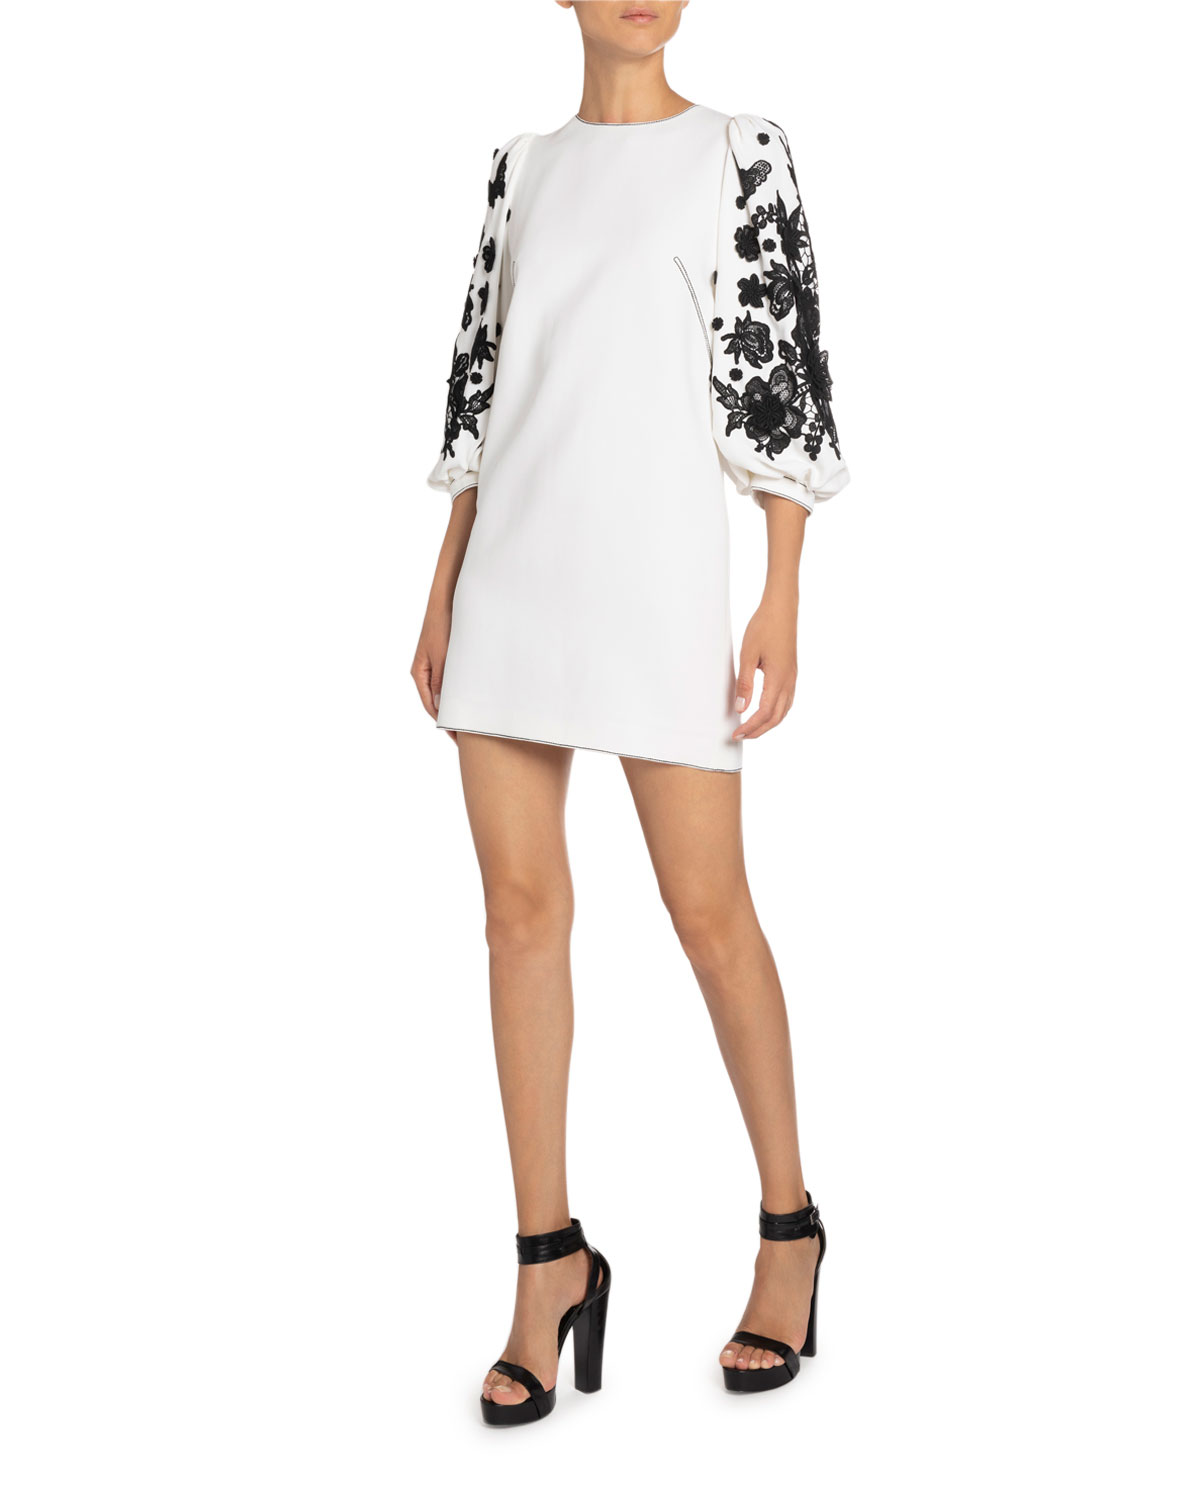 Andrew Gn Lace-Trim Balloon-Sleeve Mini Dress